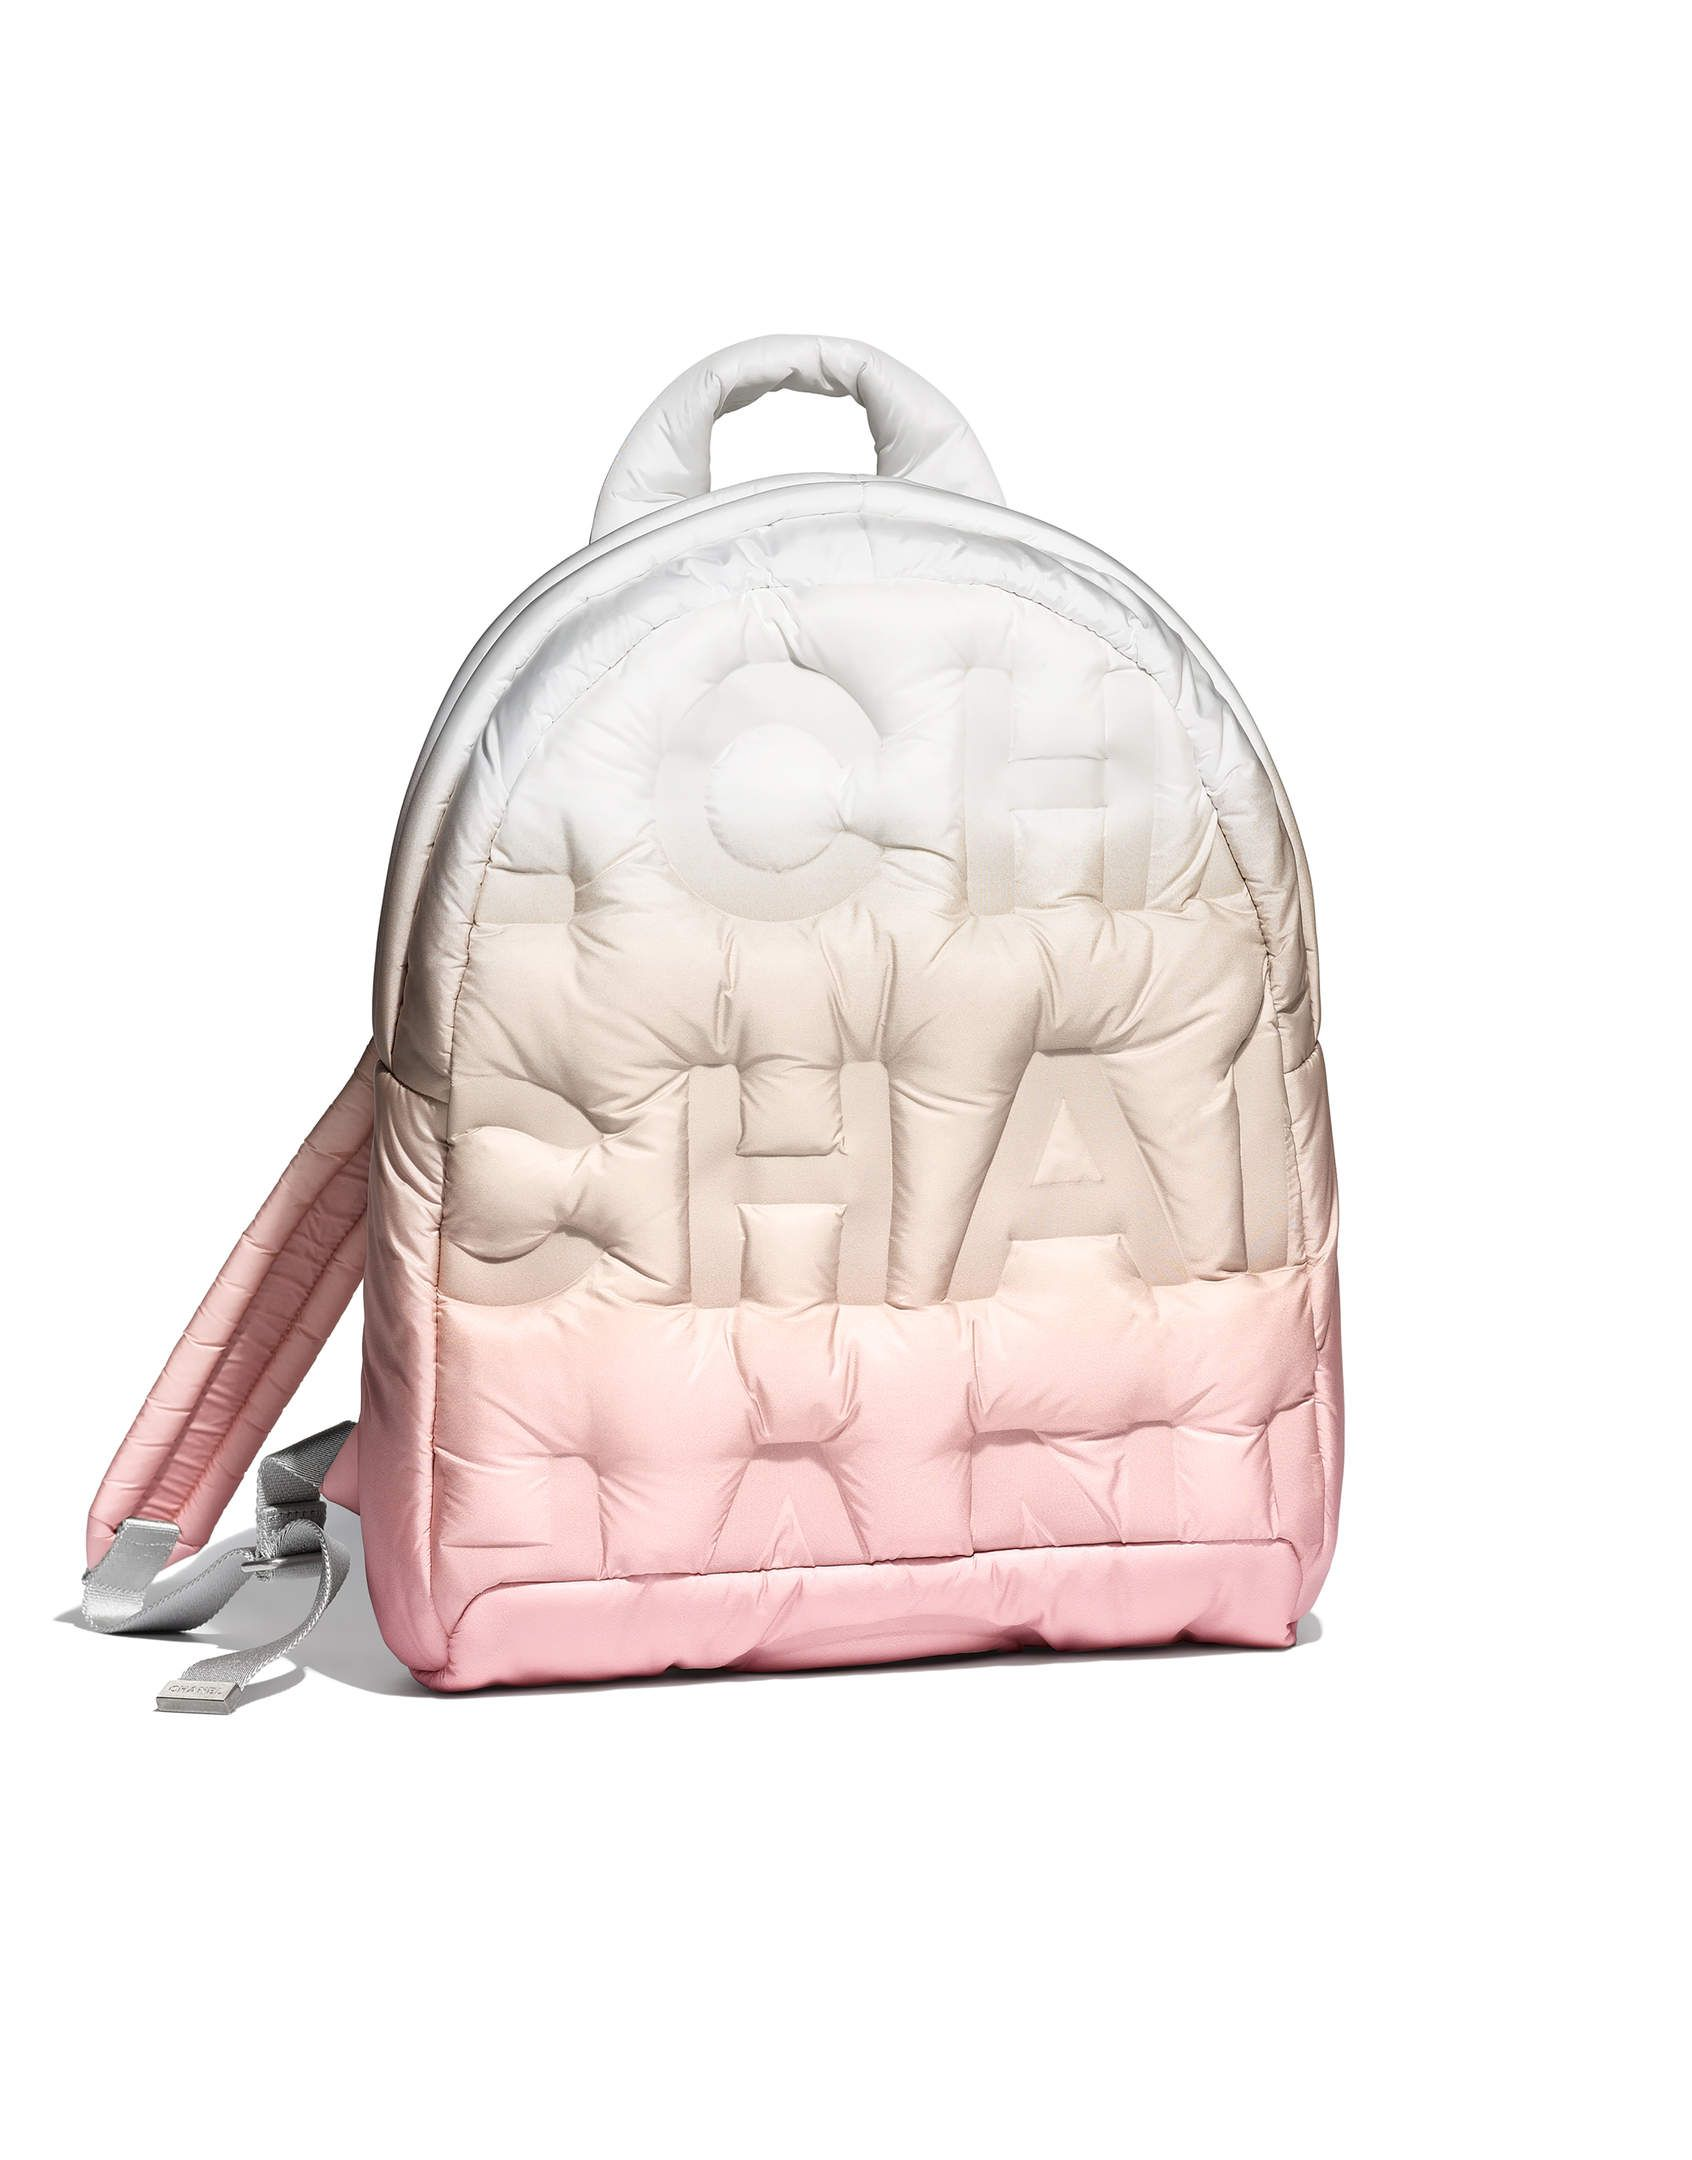 b94595484 Backpack, embossed nylon & silver-tone metal-pink, beige & white - CHANEL